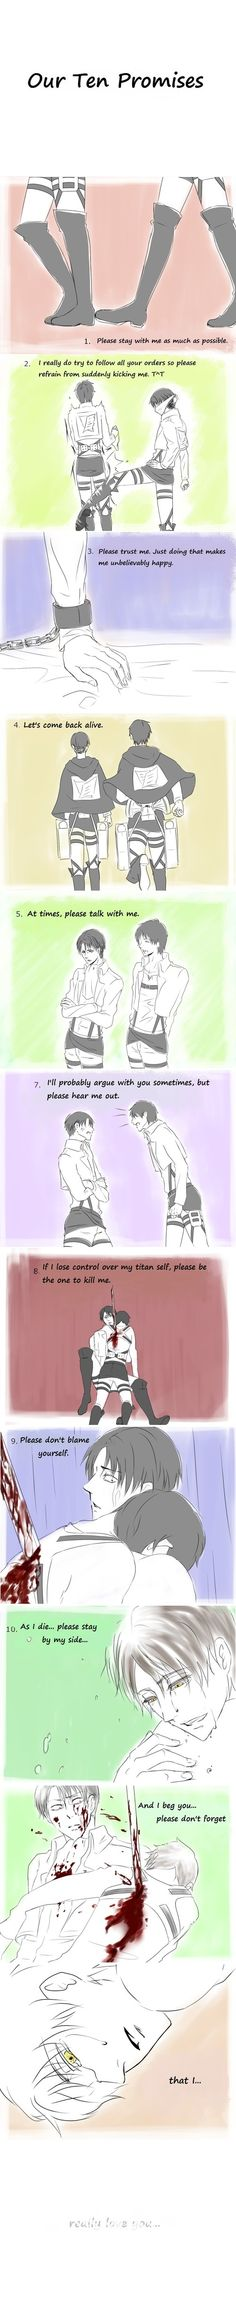 Our 10 Promises. Attack on Titan comic. original by: 驟雨 / translated by: miwithmi Eren and Levi many feels...